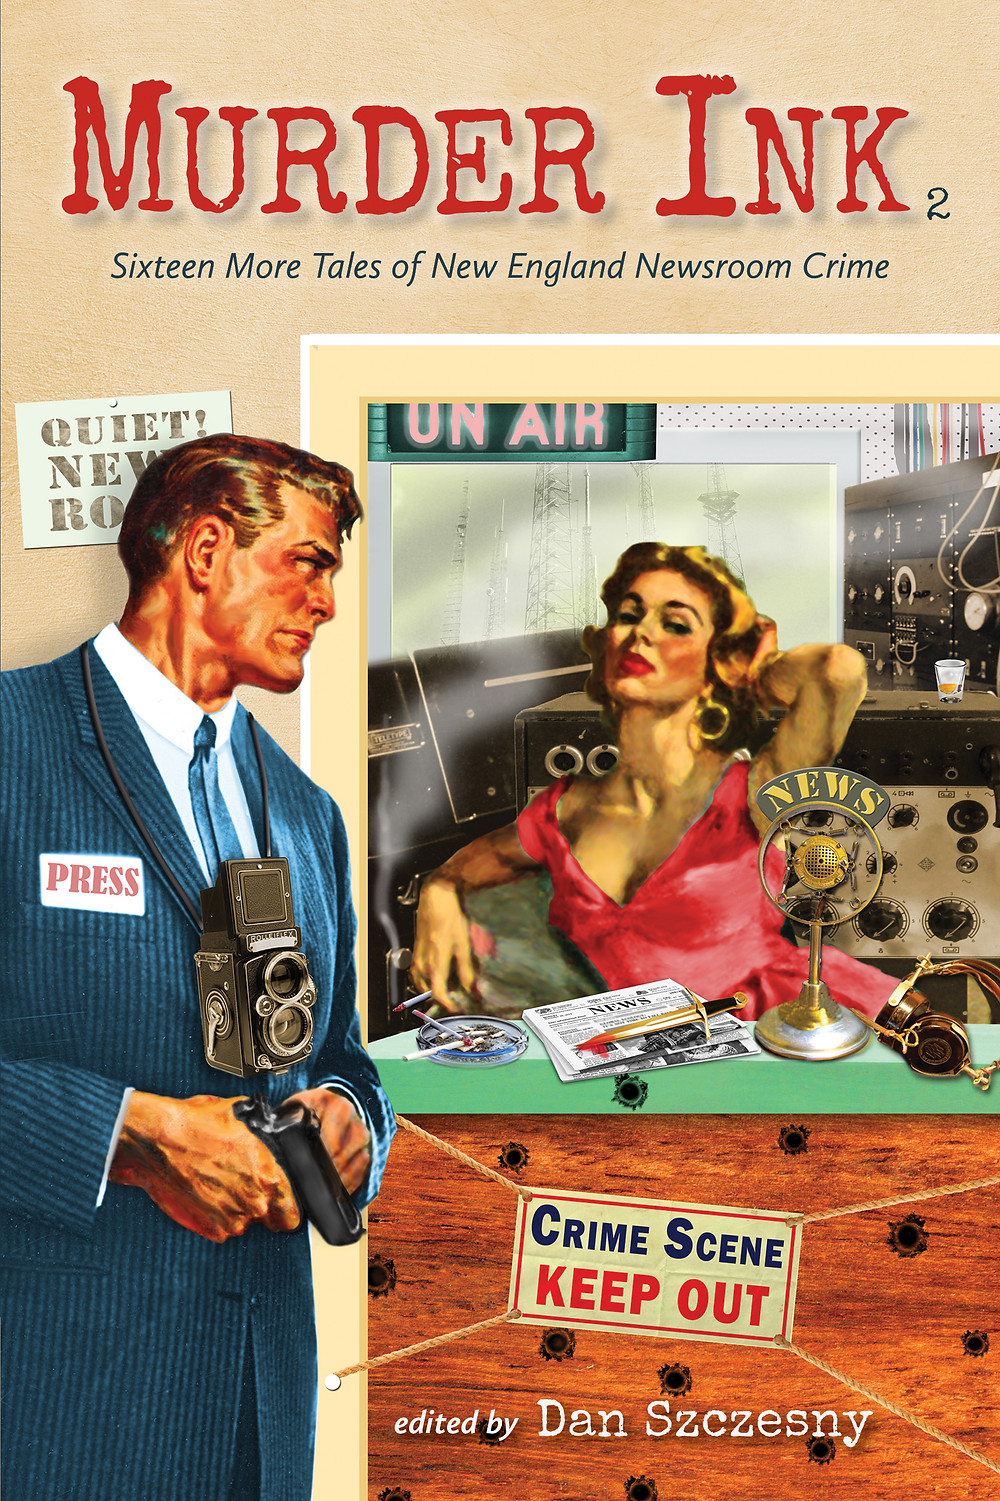 pulp fiction-style handsome reporter and blonde bombshell